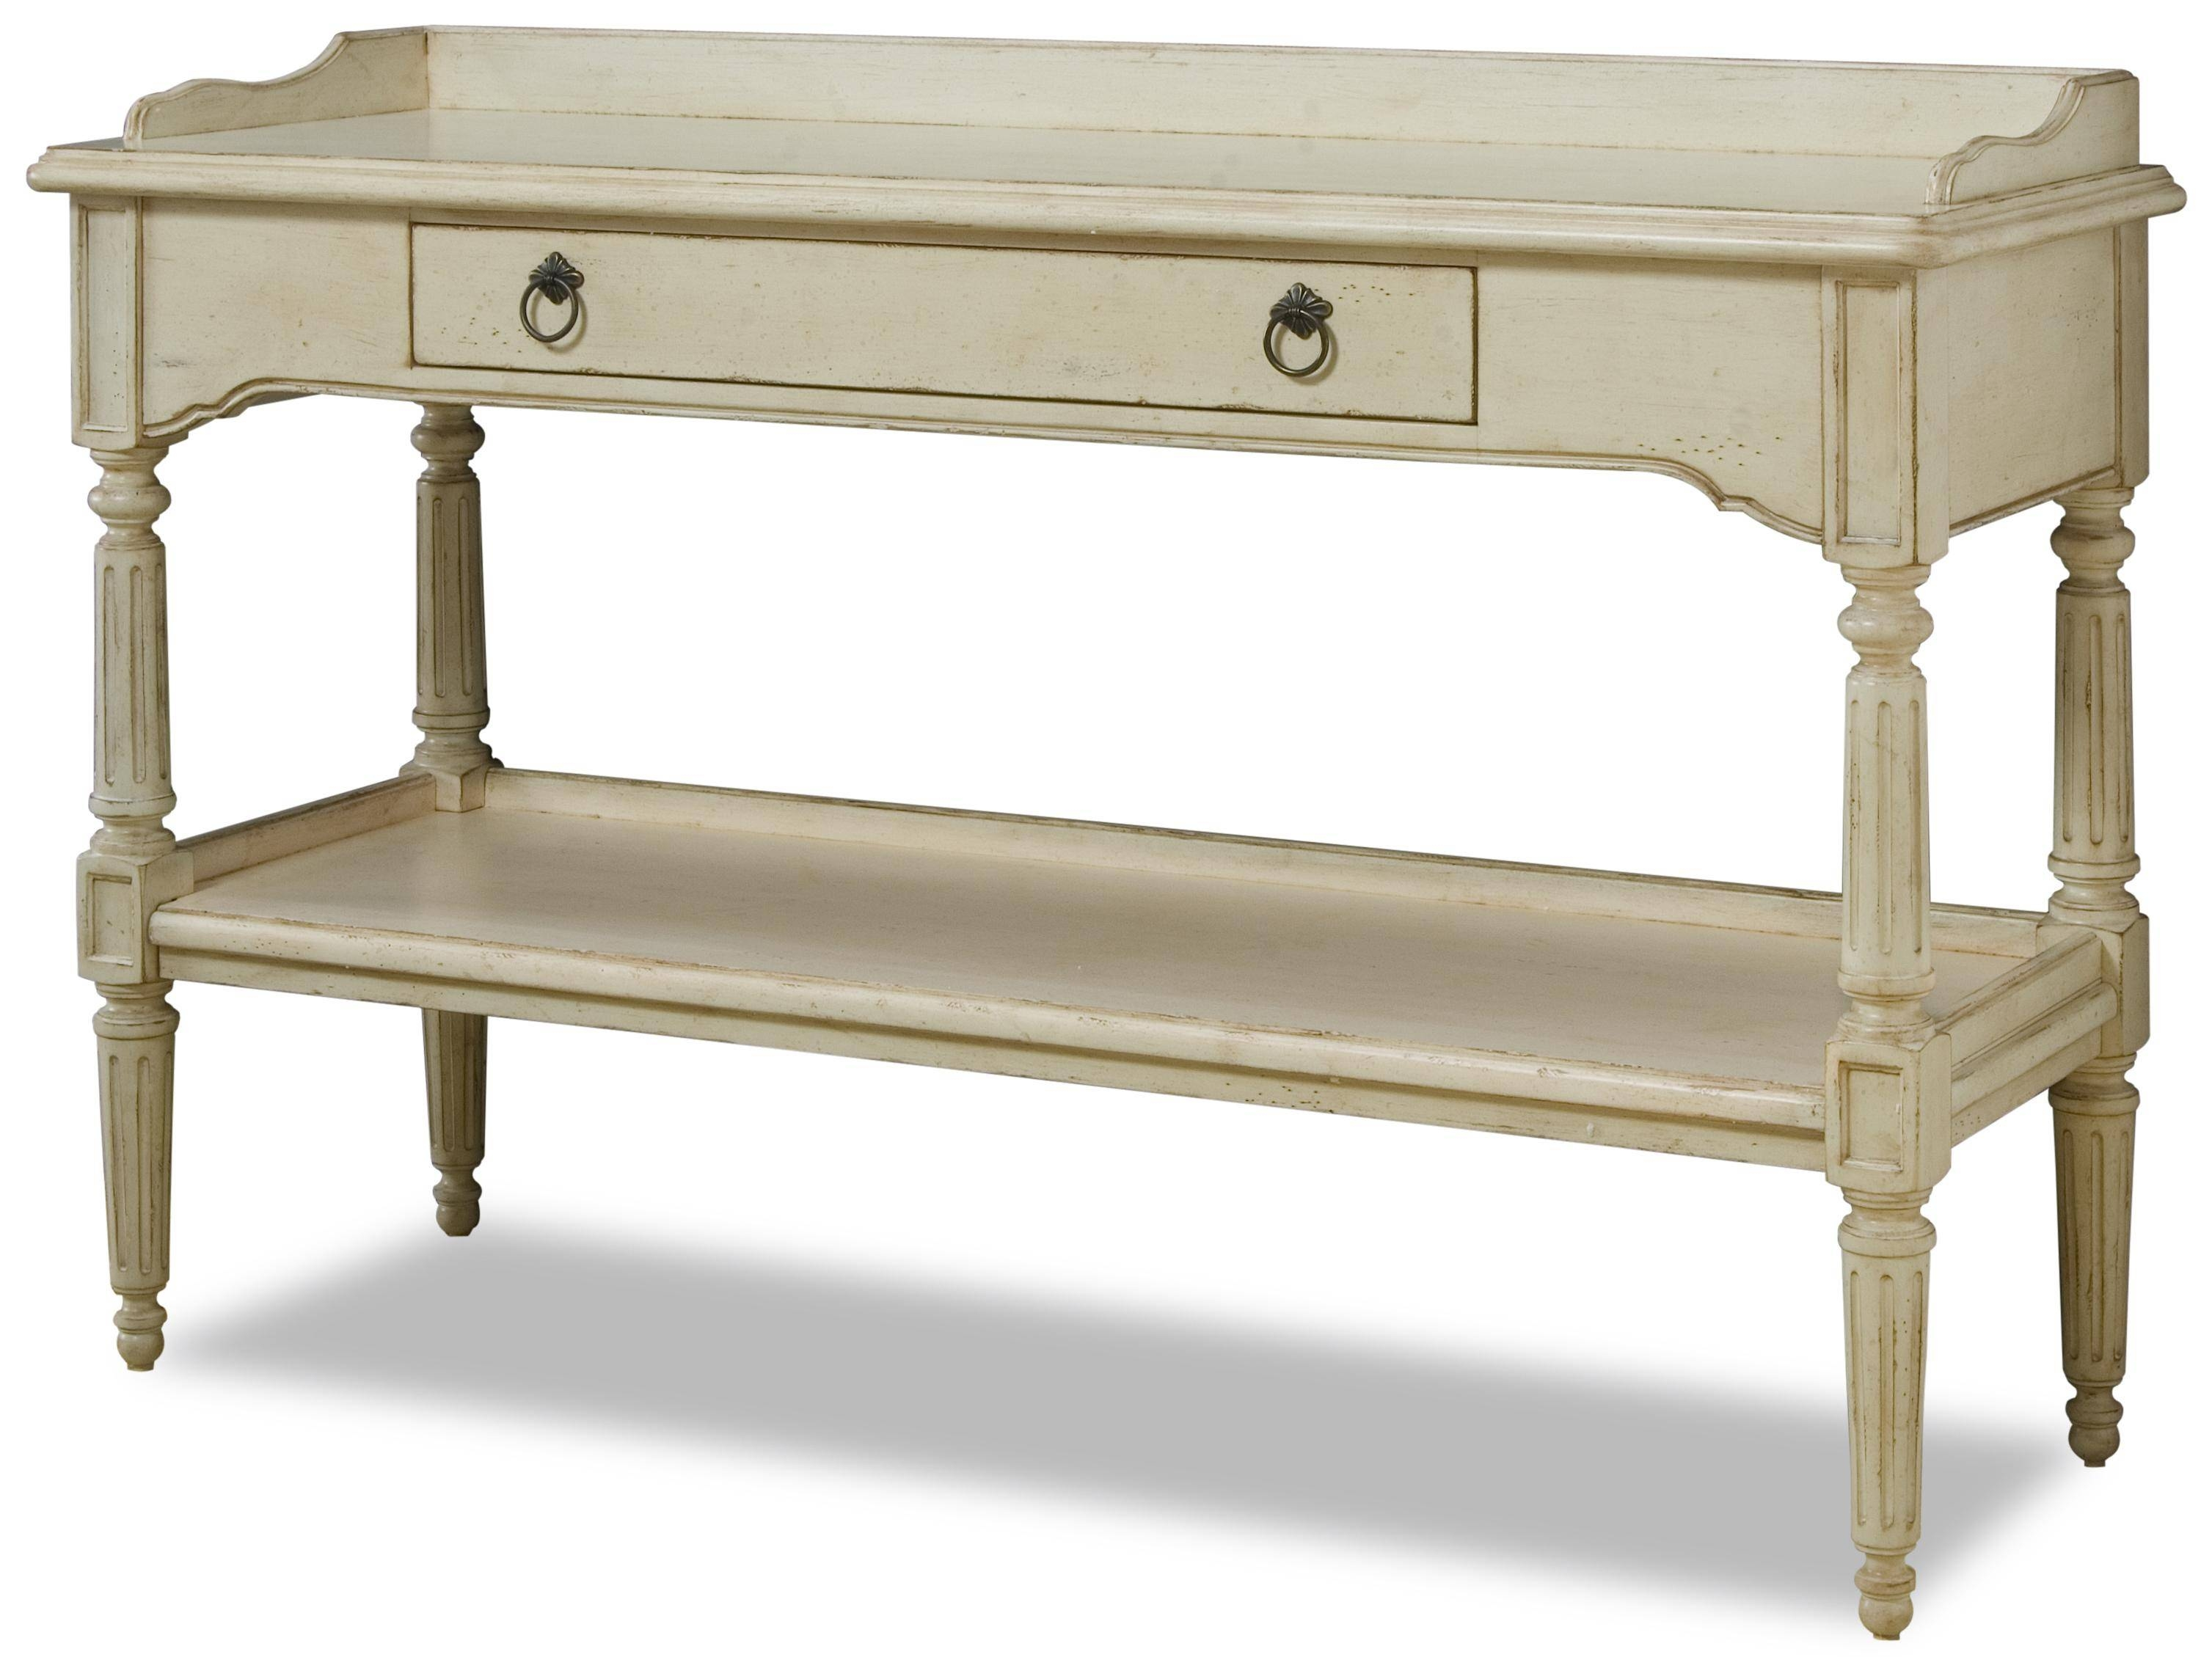 Sofa Table With Shelf And Drawera.r.t. Furniture Inc | Wolf with Sofa Table Drawers (Image 22 of 30)